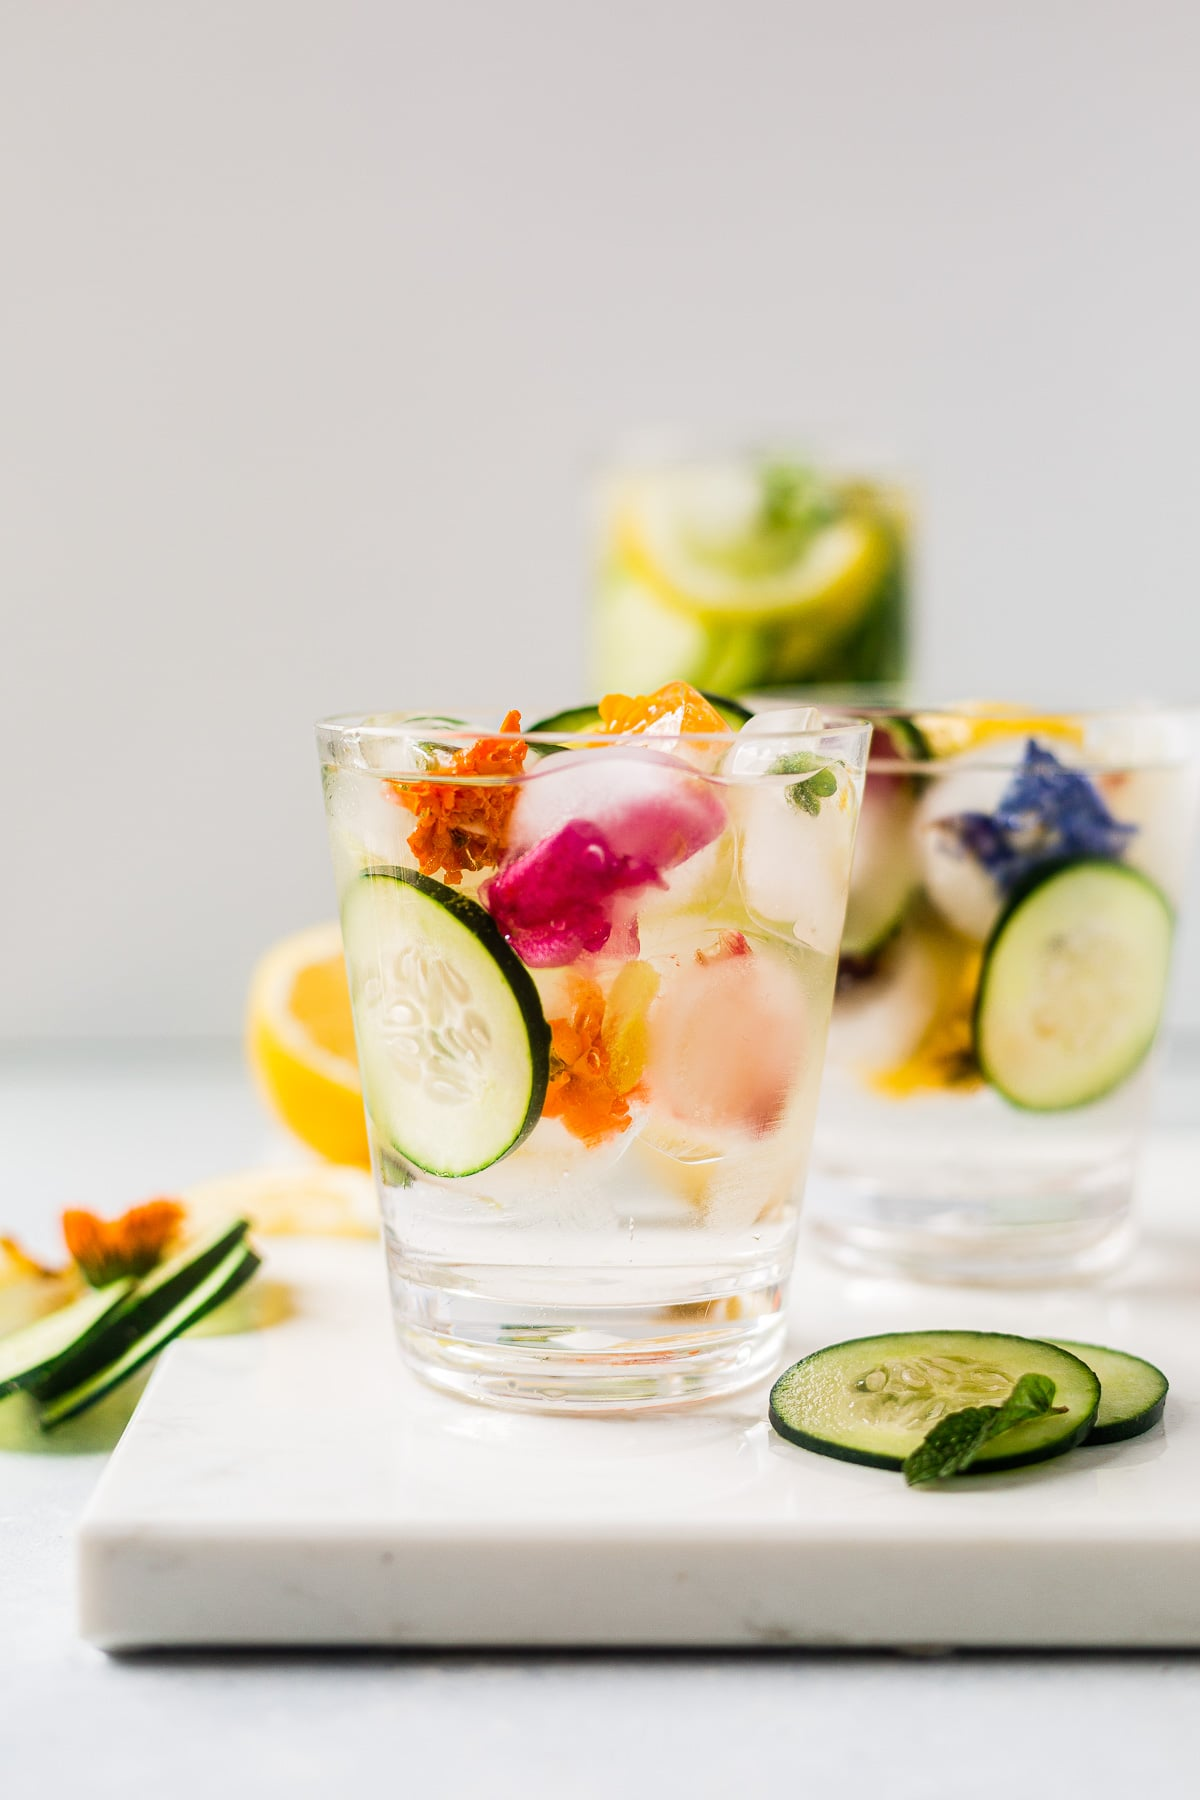 cucumber and lemon water in a cup served with edible flower ice cubes